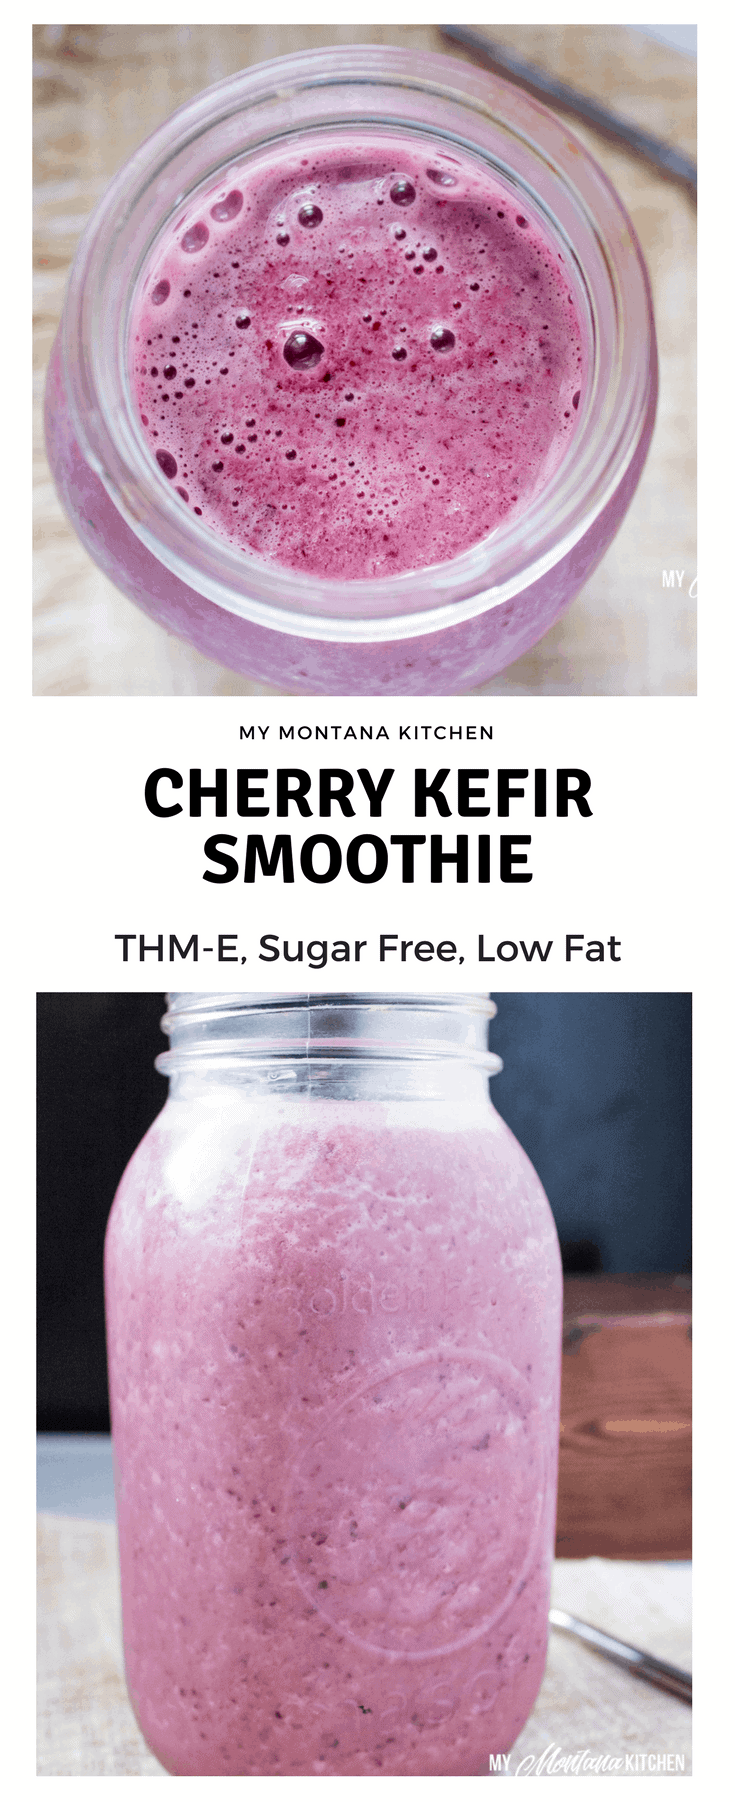 Cherry Kefir Smoothie (Low Fat, THM-E, Sugar Free) #trimhealthymama #thm #thme #healthycarbs #cherries #kefir #smoothies #healthydrink #probiotics